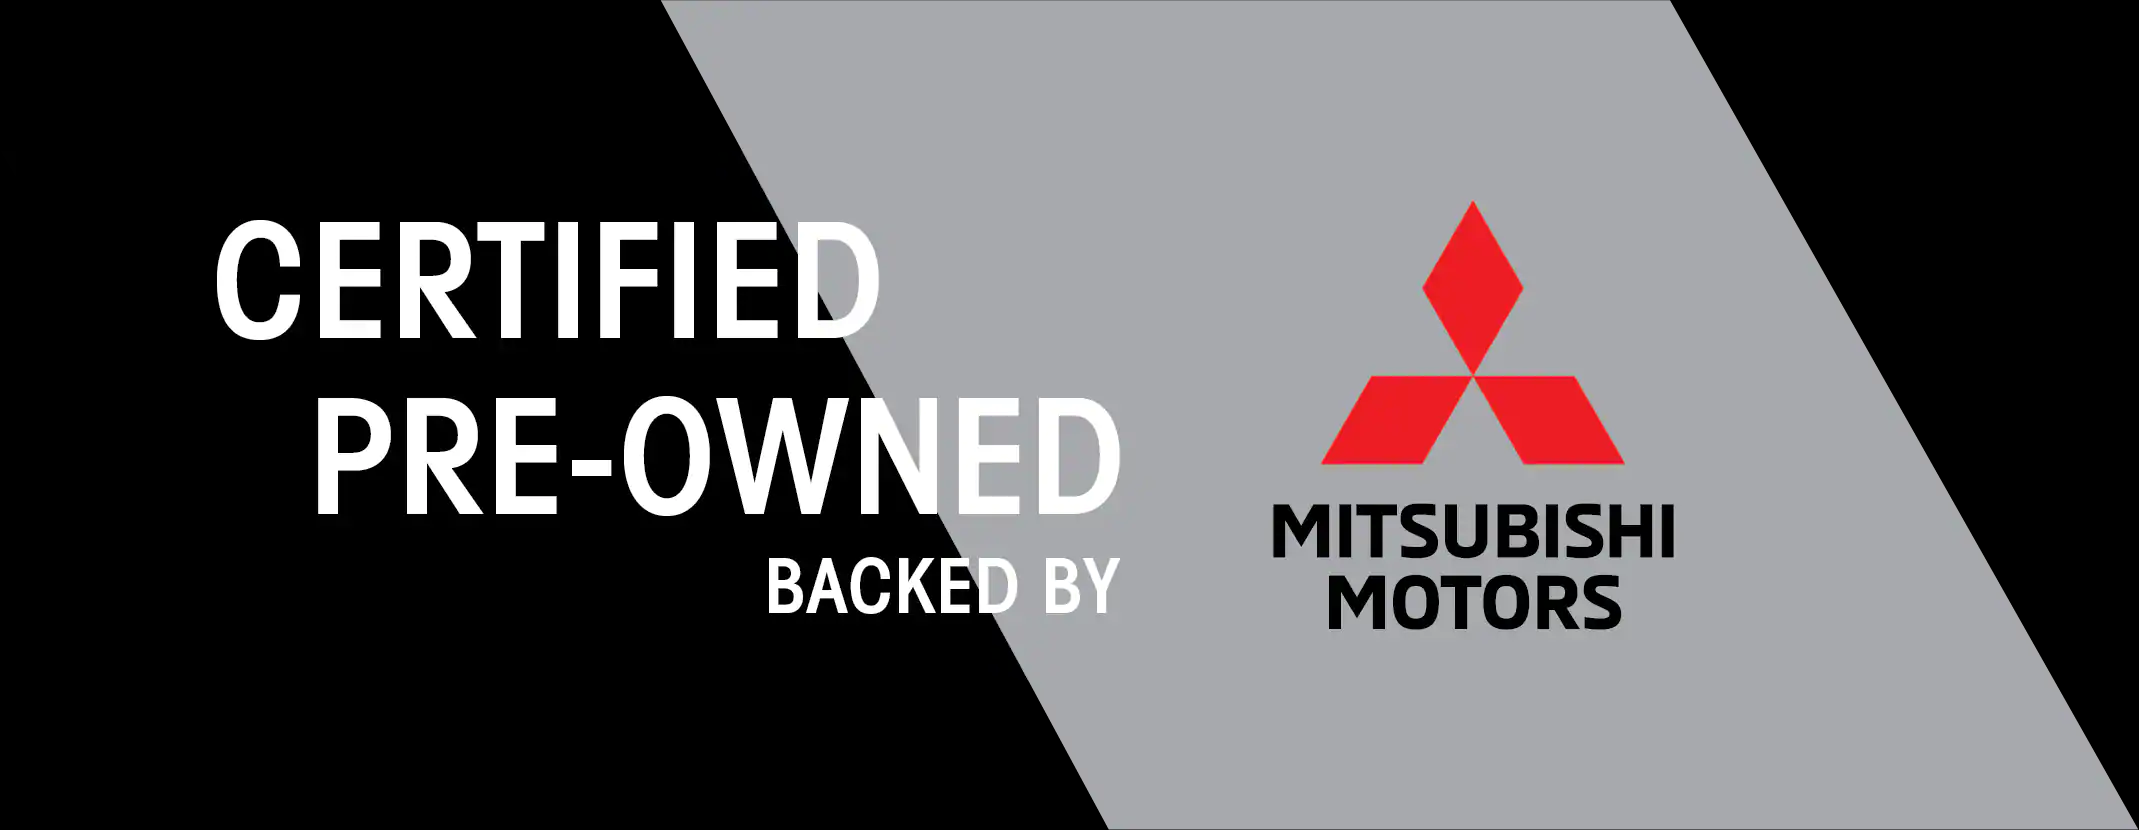 Vern Eide Mitsubishi-Certified Pre-Owned